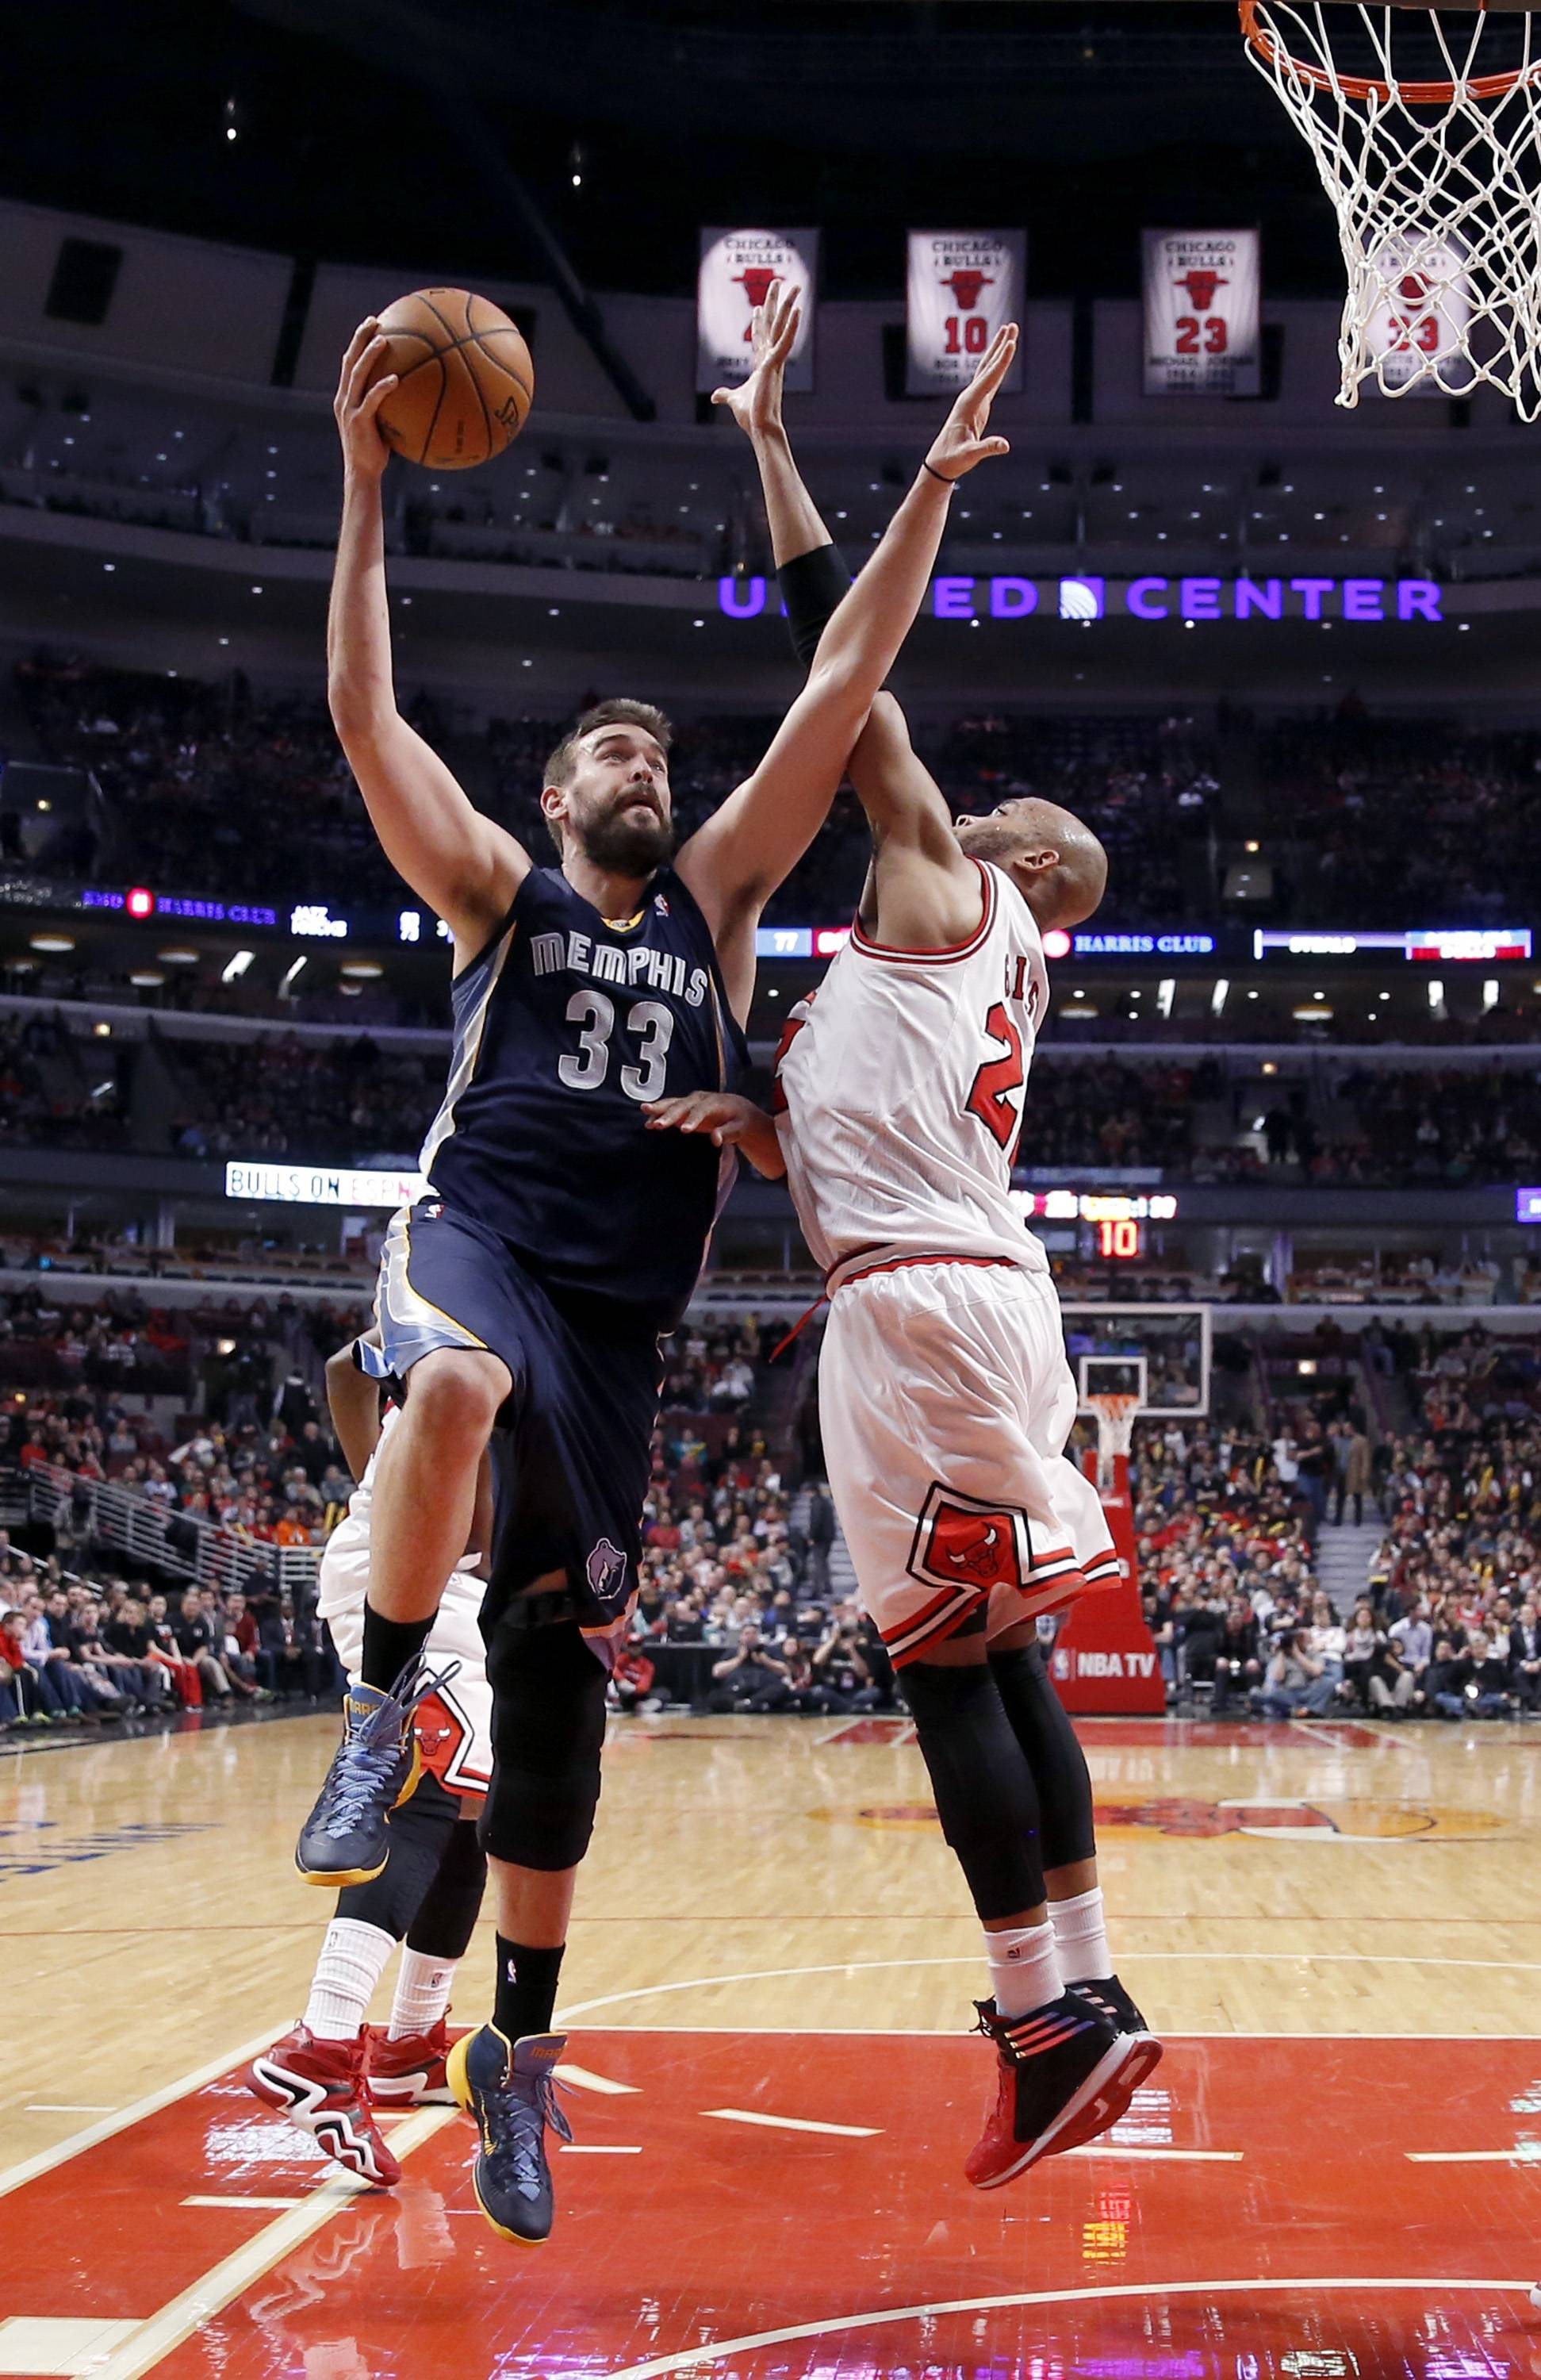 Memphis Grizzlies center Marc Gasol (33) shoots over Chicago Bulls' Taj Gibson (22) during the second half of an NBA basketball game on Friday, March 7, 2014, in Chicago. The Grizzlies won 85-77. (AP Photo/Charles Rex Arbogast)